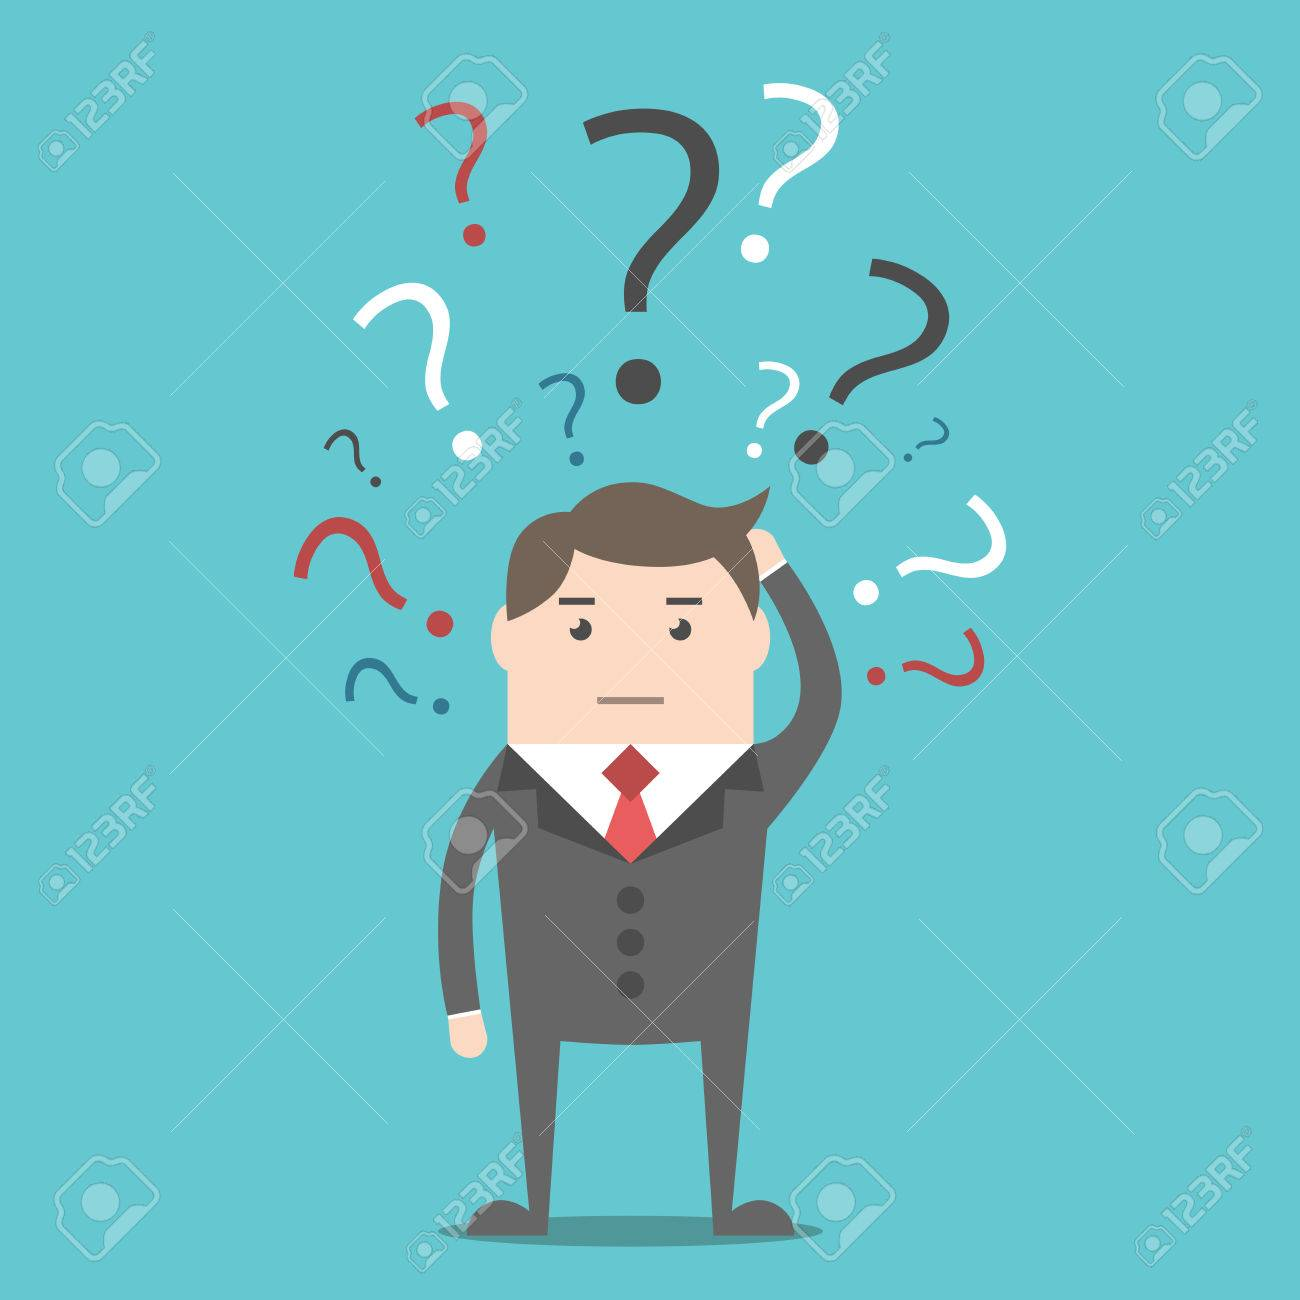 Confused Thinking Businessman With Many Multicolor Question Marks.. Royalty  Free Cliparts, Vectors, And Stock Illustration. Image 62199197.